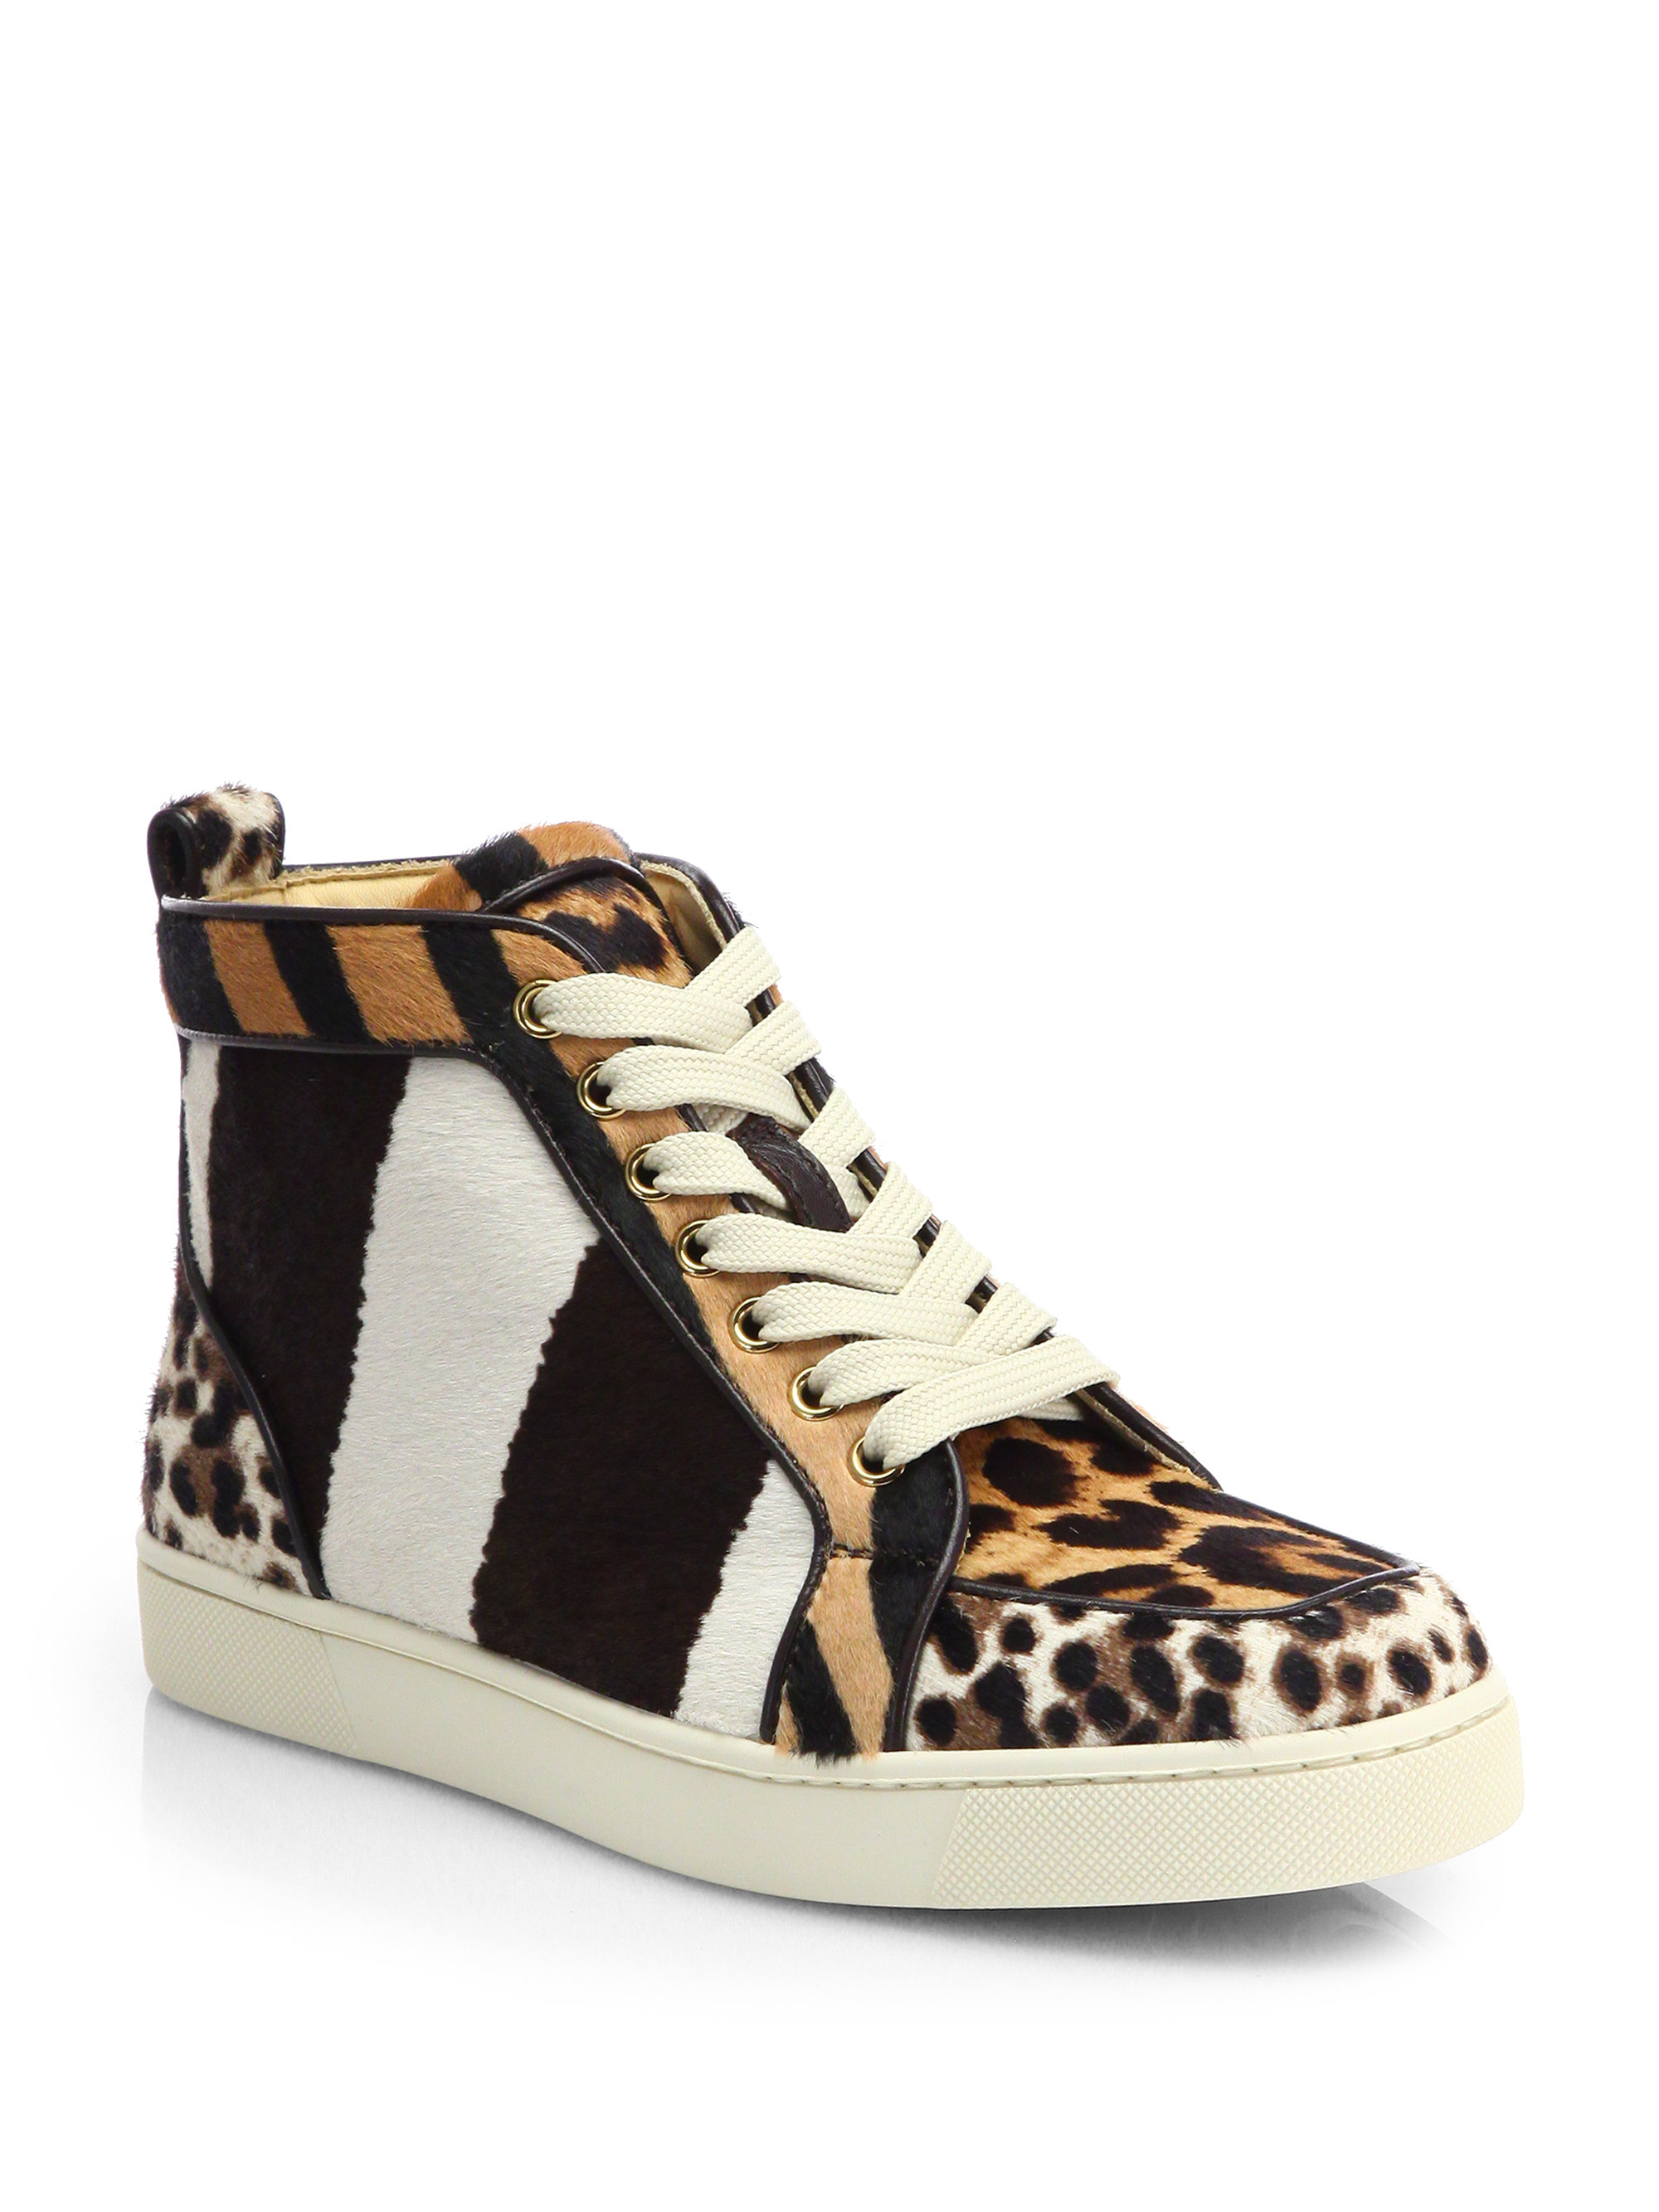 christian louboutin rantus orlato mixed animal print calf hair sneakers lyst. Black Bedroom Furniture Sets. Home Design Ideas